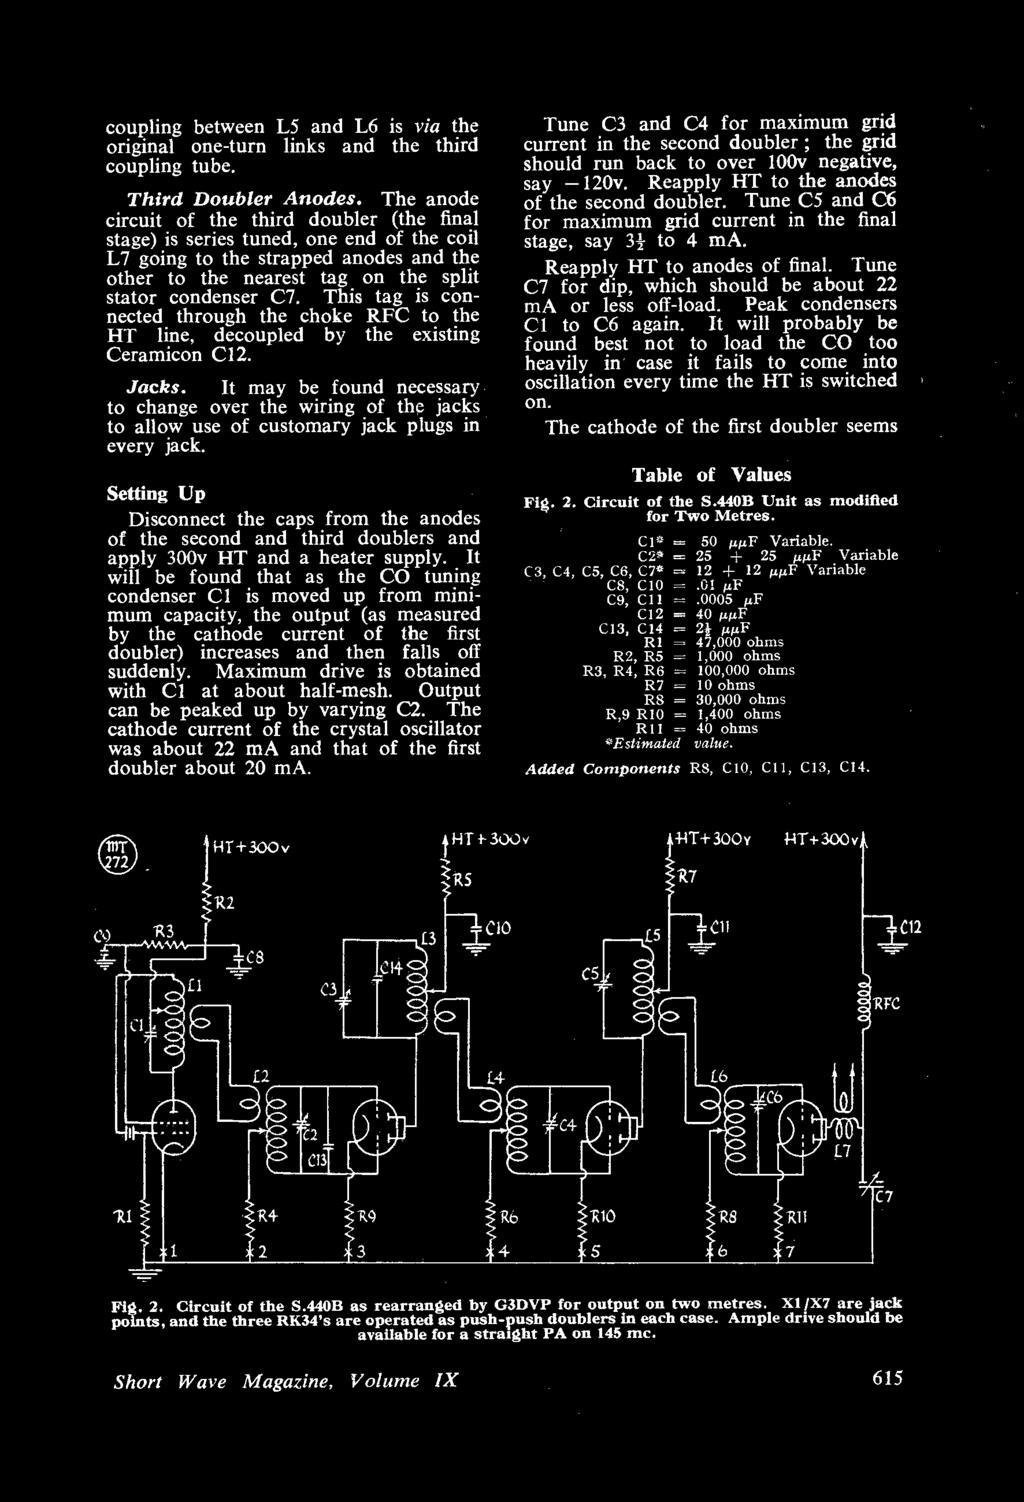 Short Wave Transmitting Amateur Vol Ix No Io December 1951 Rc Car Circuit Finalstage Coupling Between L5 And L6 Is Via The Original One Turn Links Third